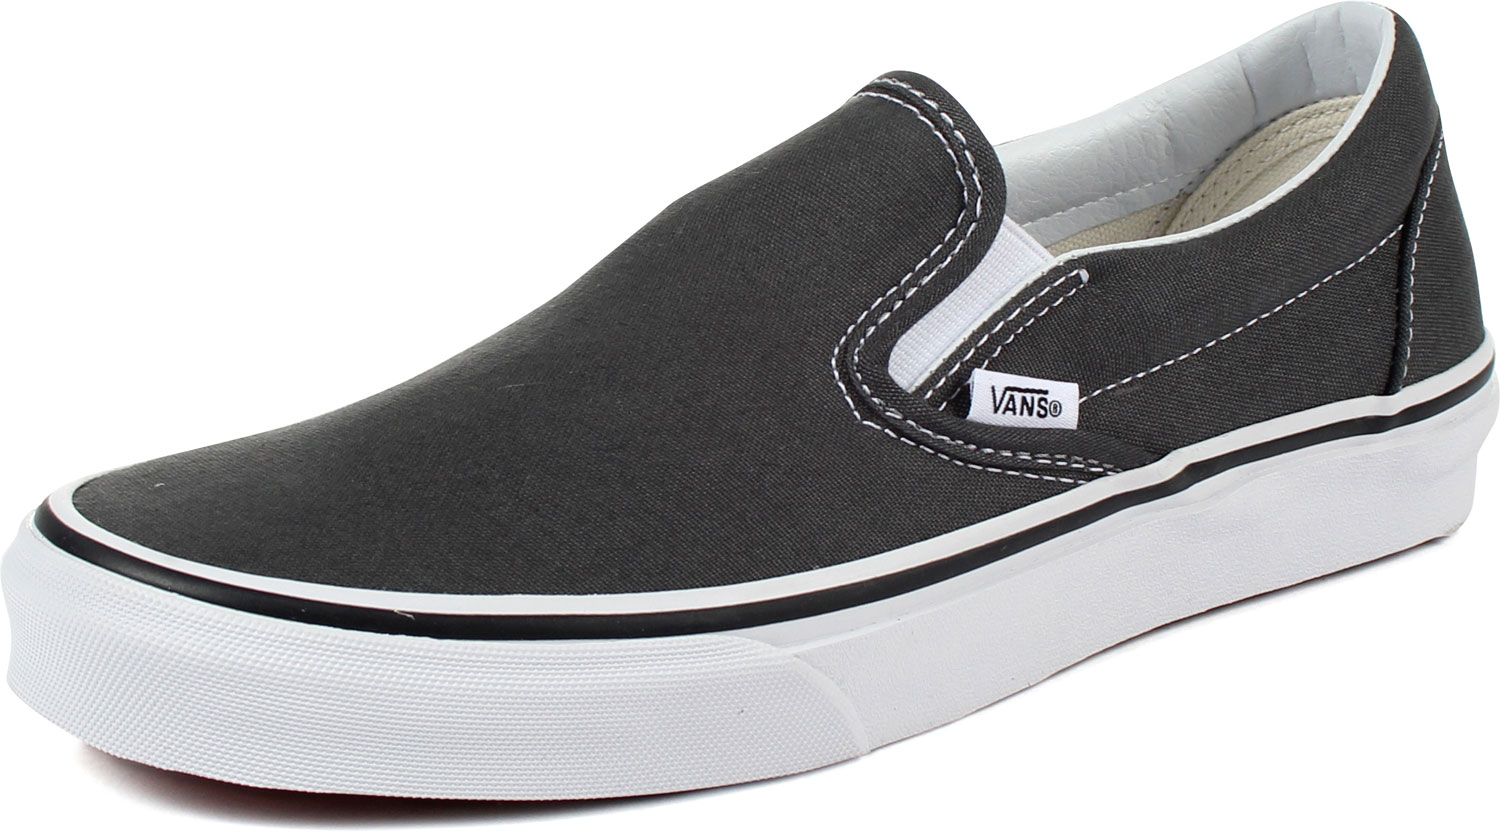 6f9c9eff205361 Vans - Unisex Adult Classic Slip-On Shoes In Charcoal